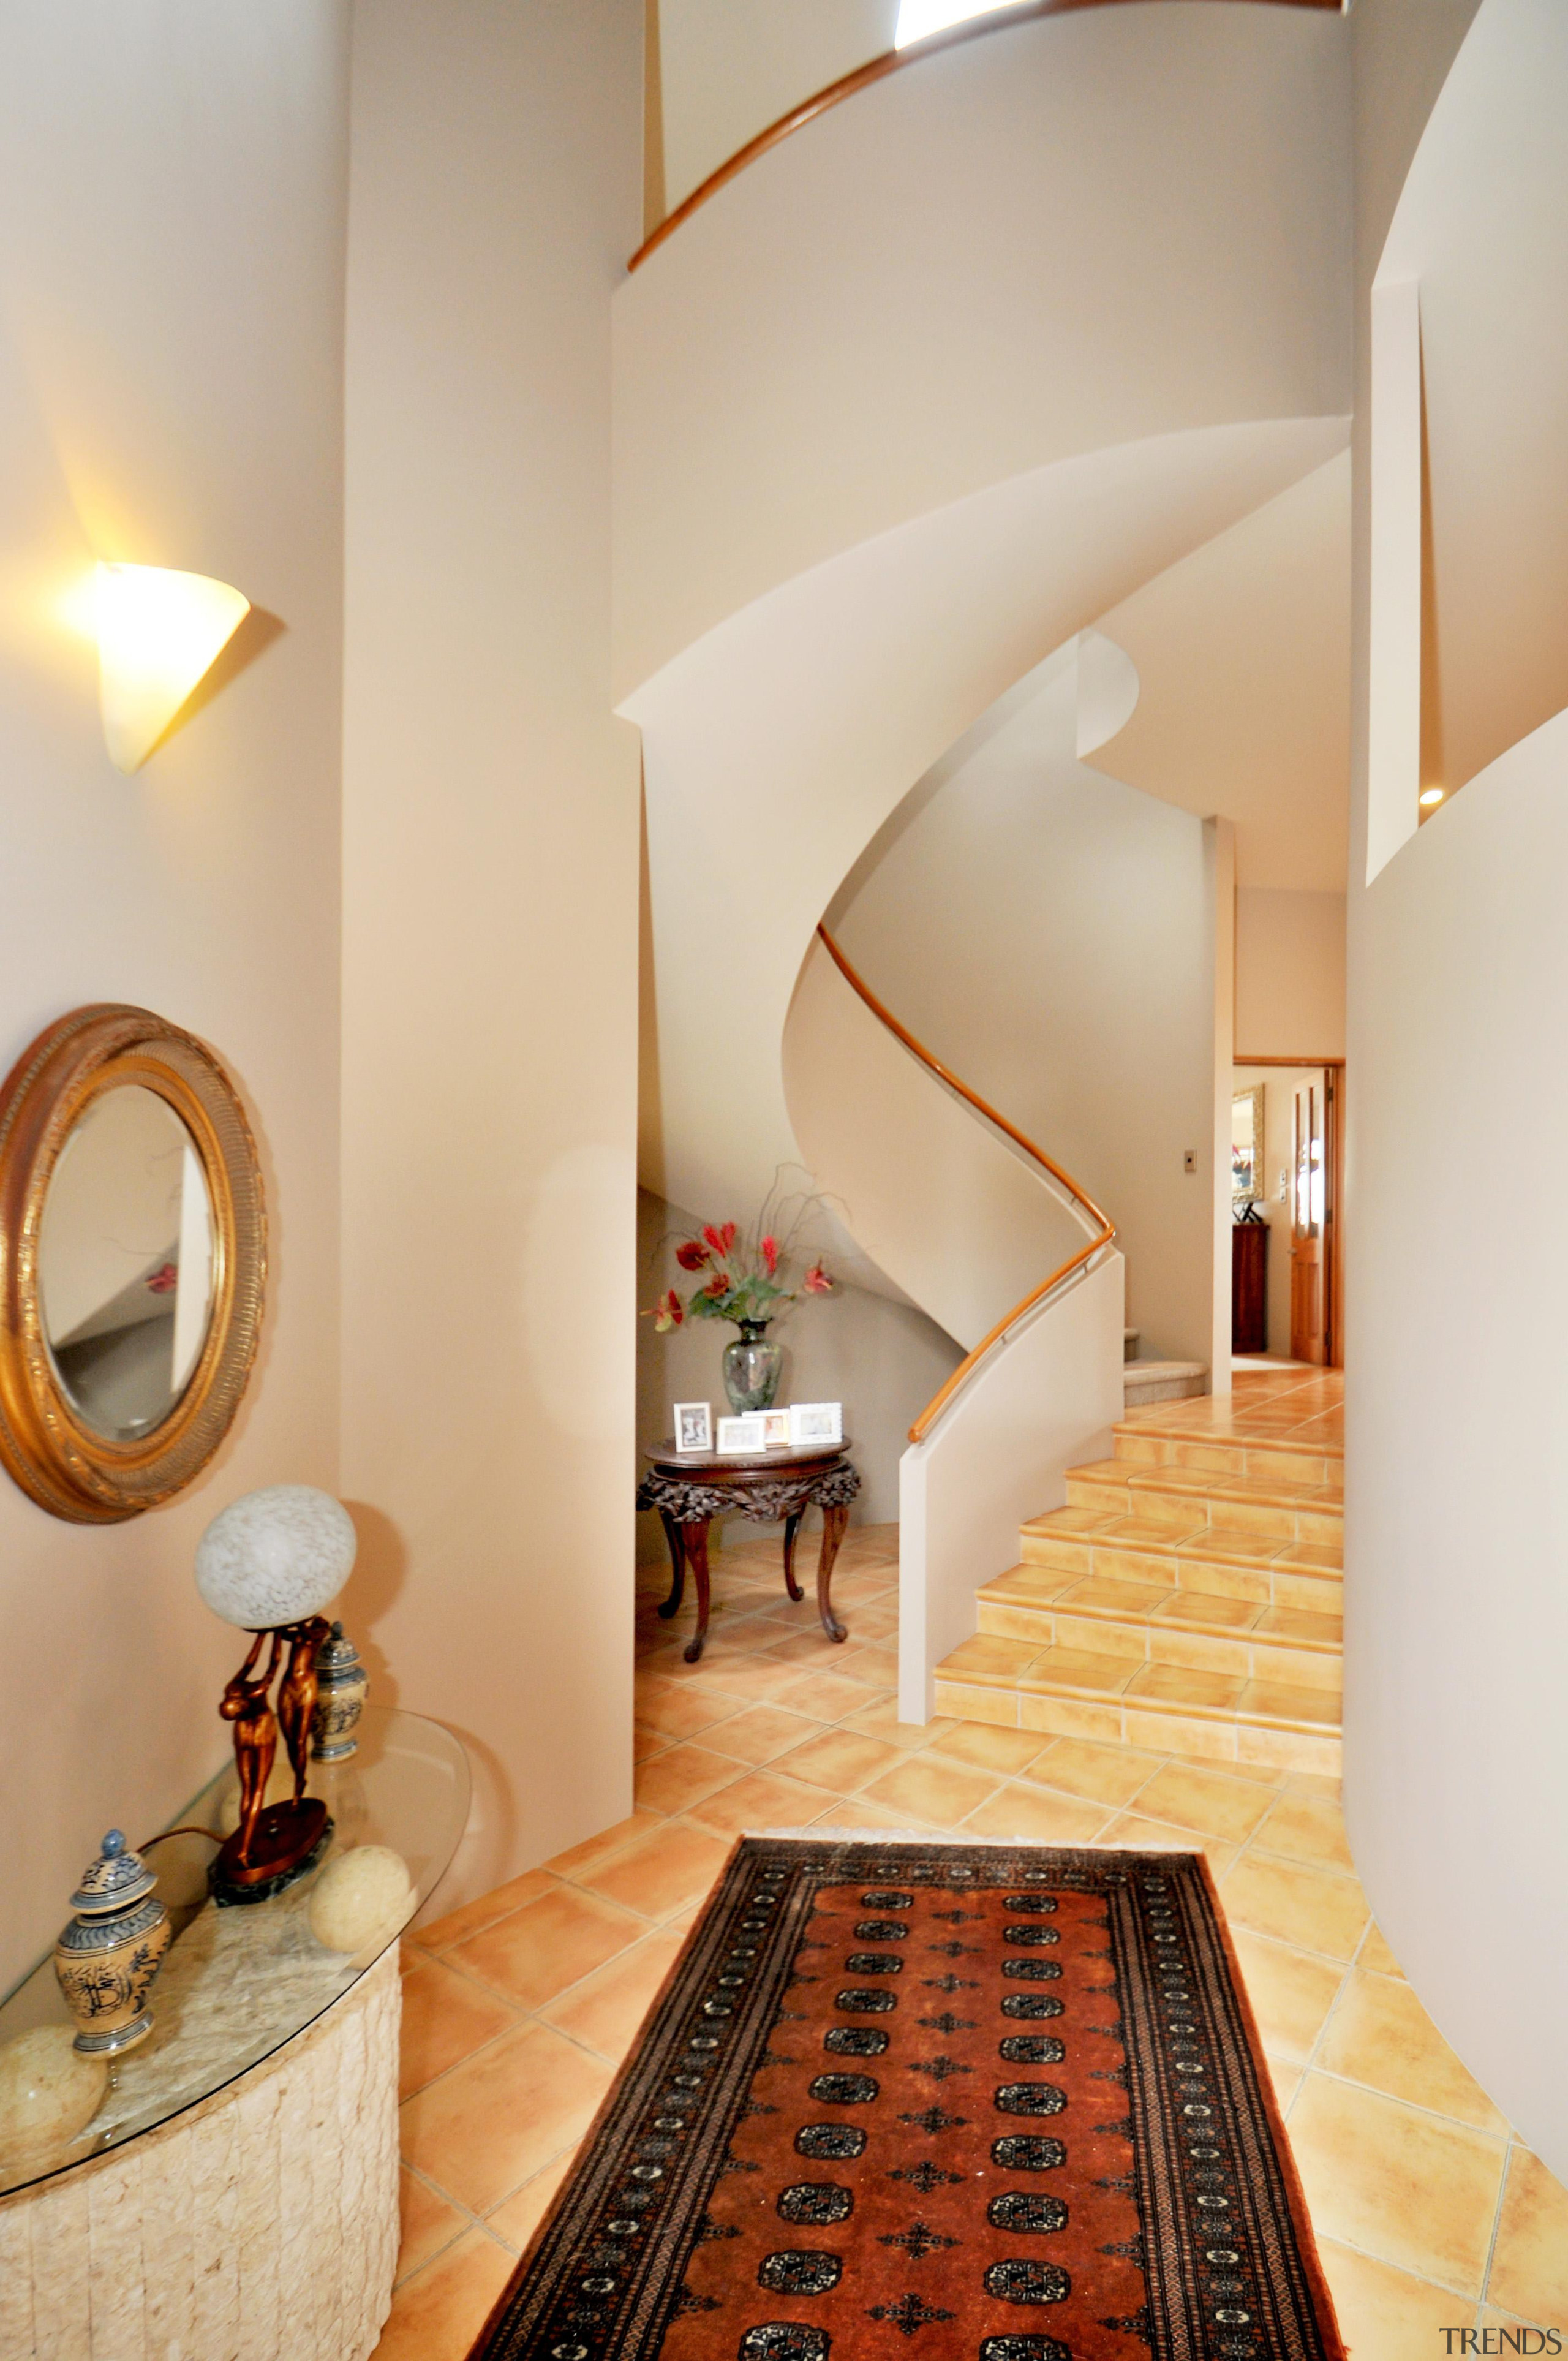 Stairs - architecture | ceiling | daylighting | architecture, ceiling, daylighting, floor, flooring, home, interior design, room, stairs, suite, gray, orange